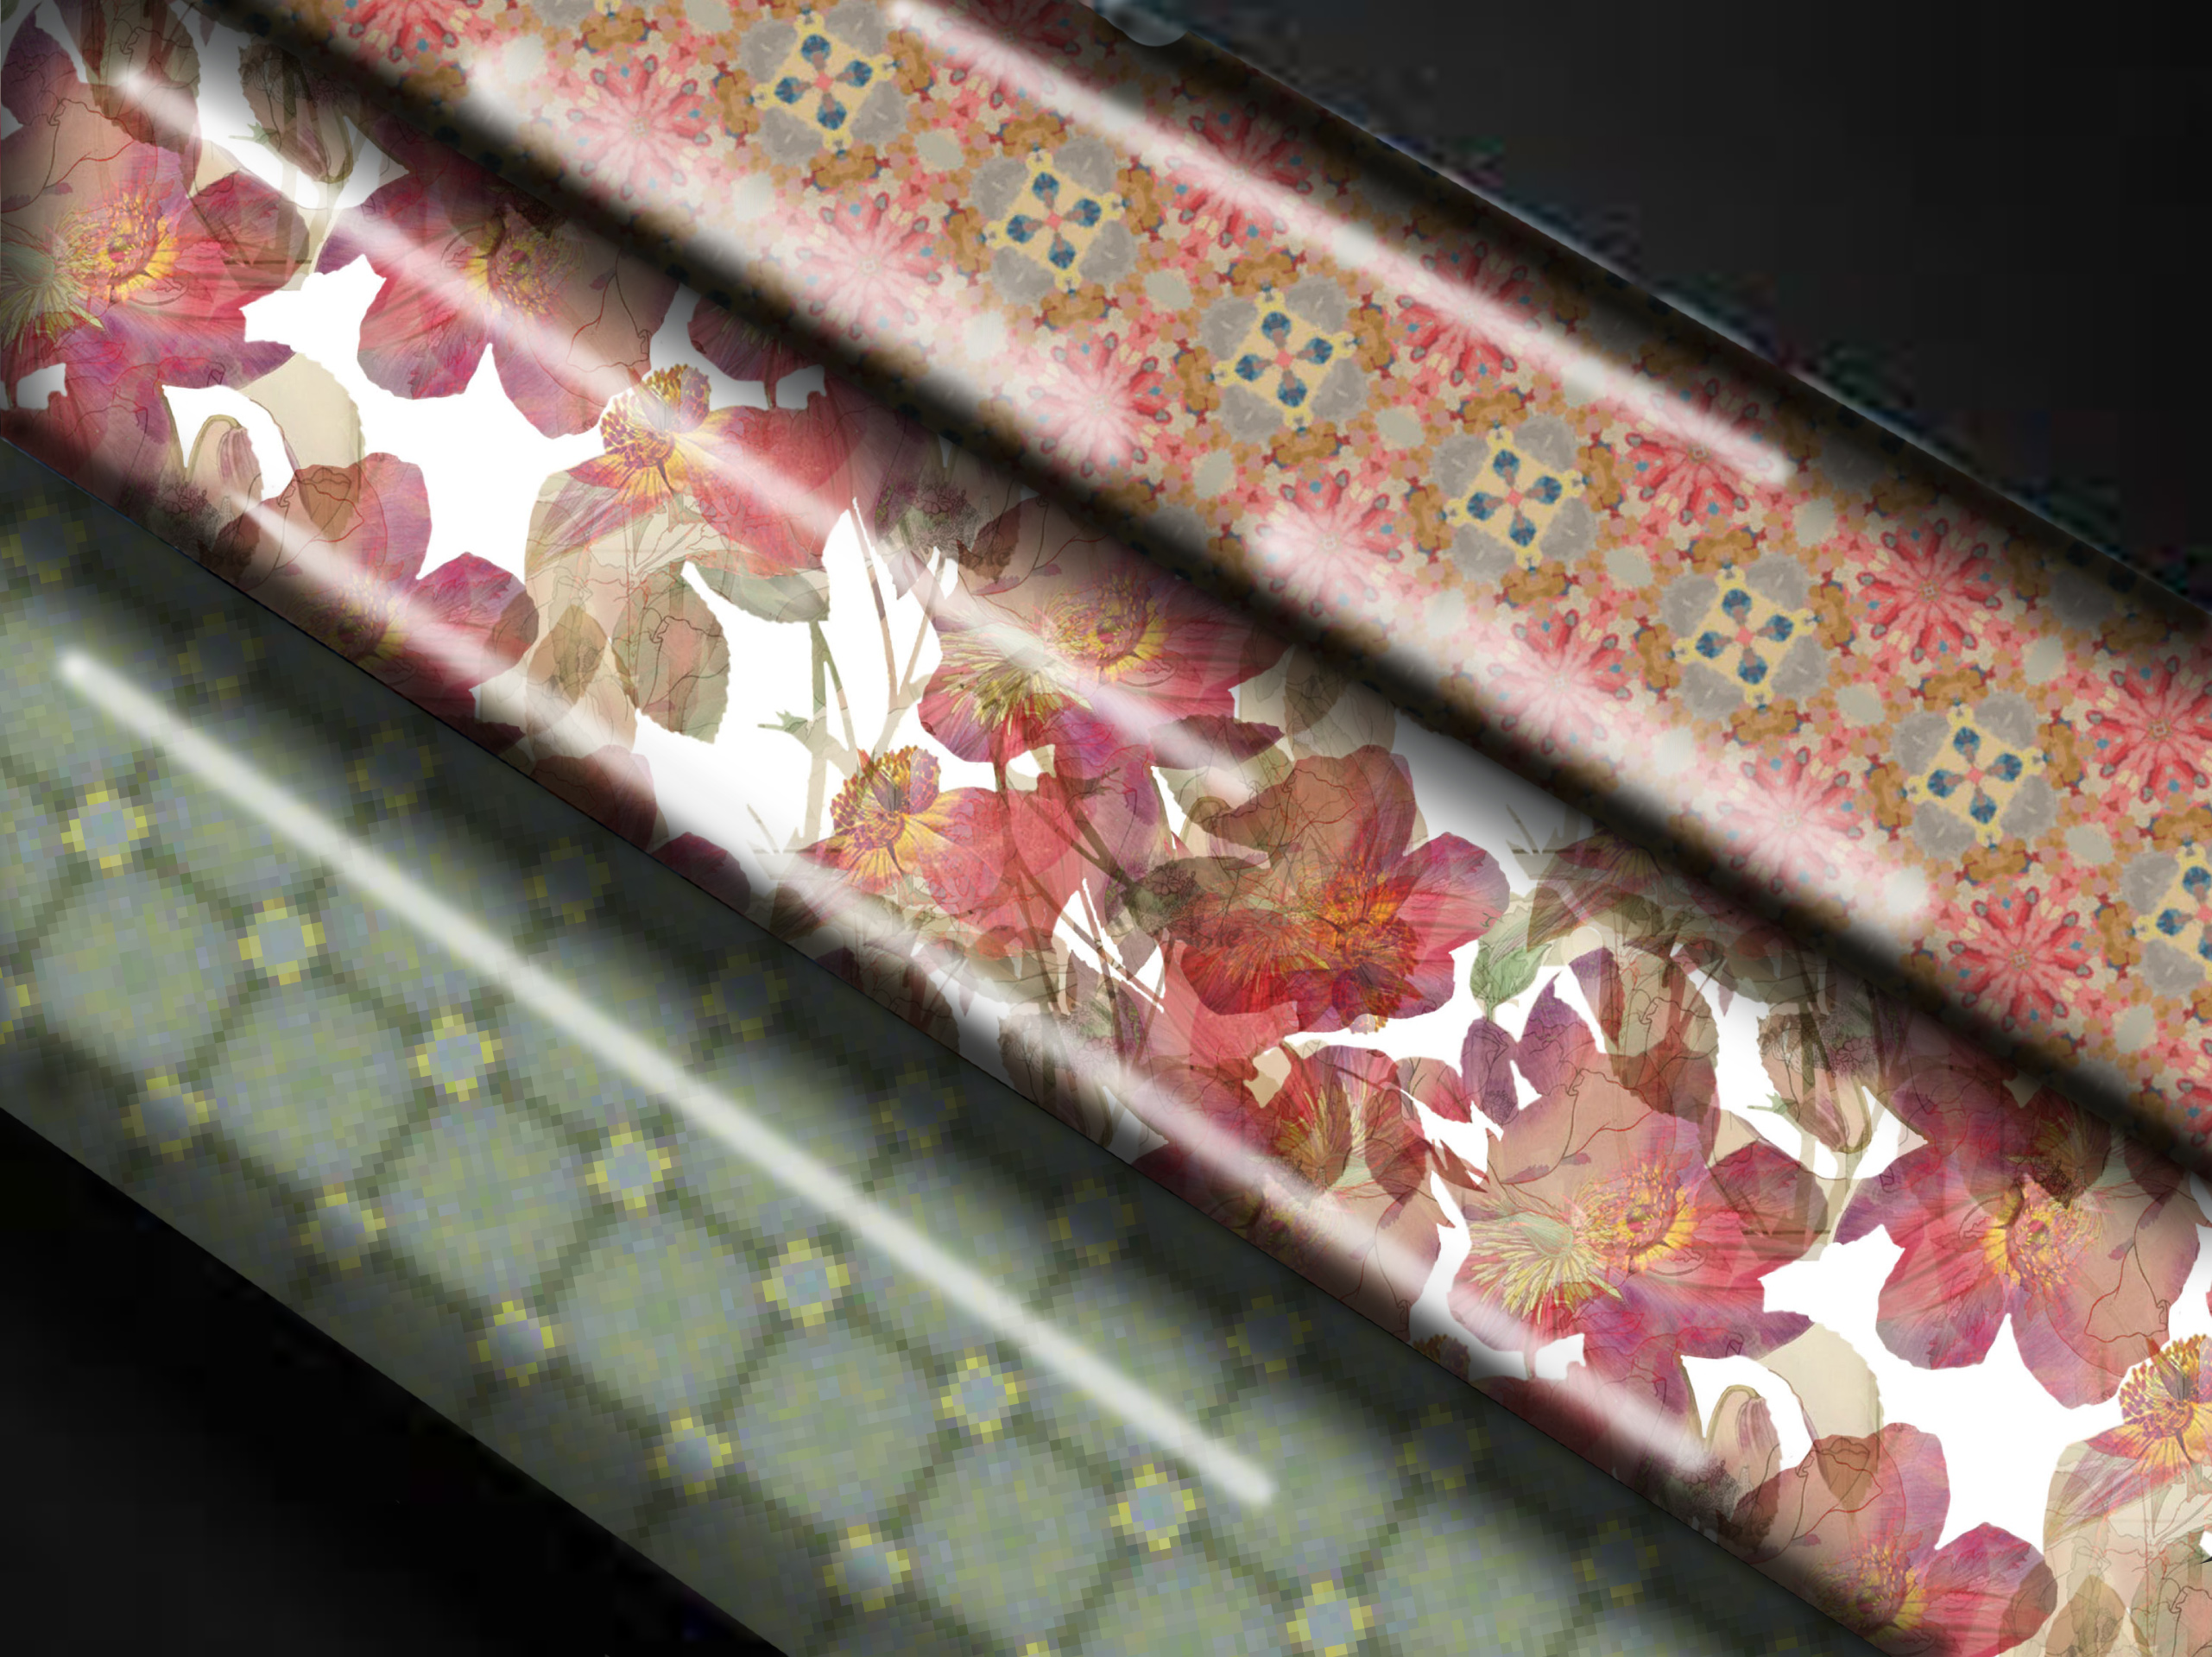 Floral overlay wrapping paper comps